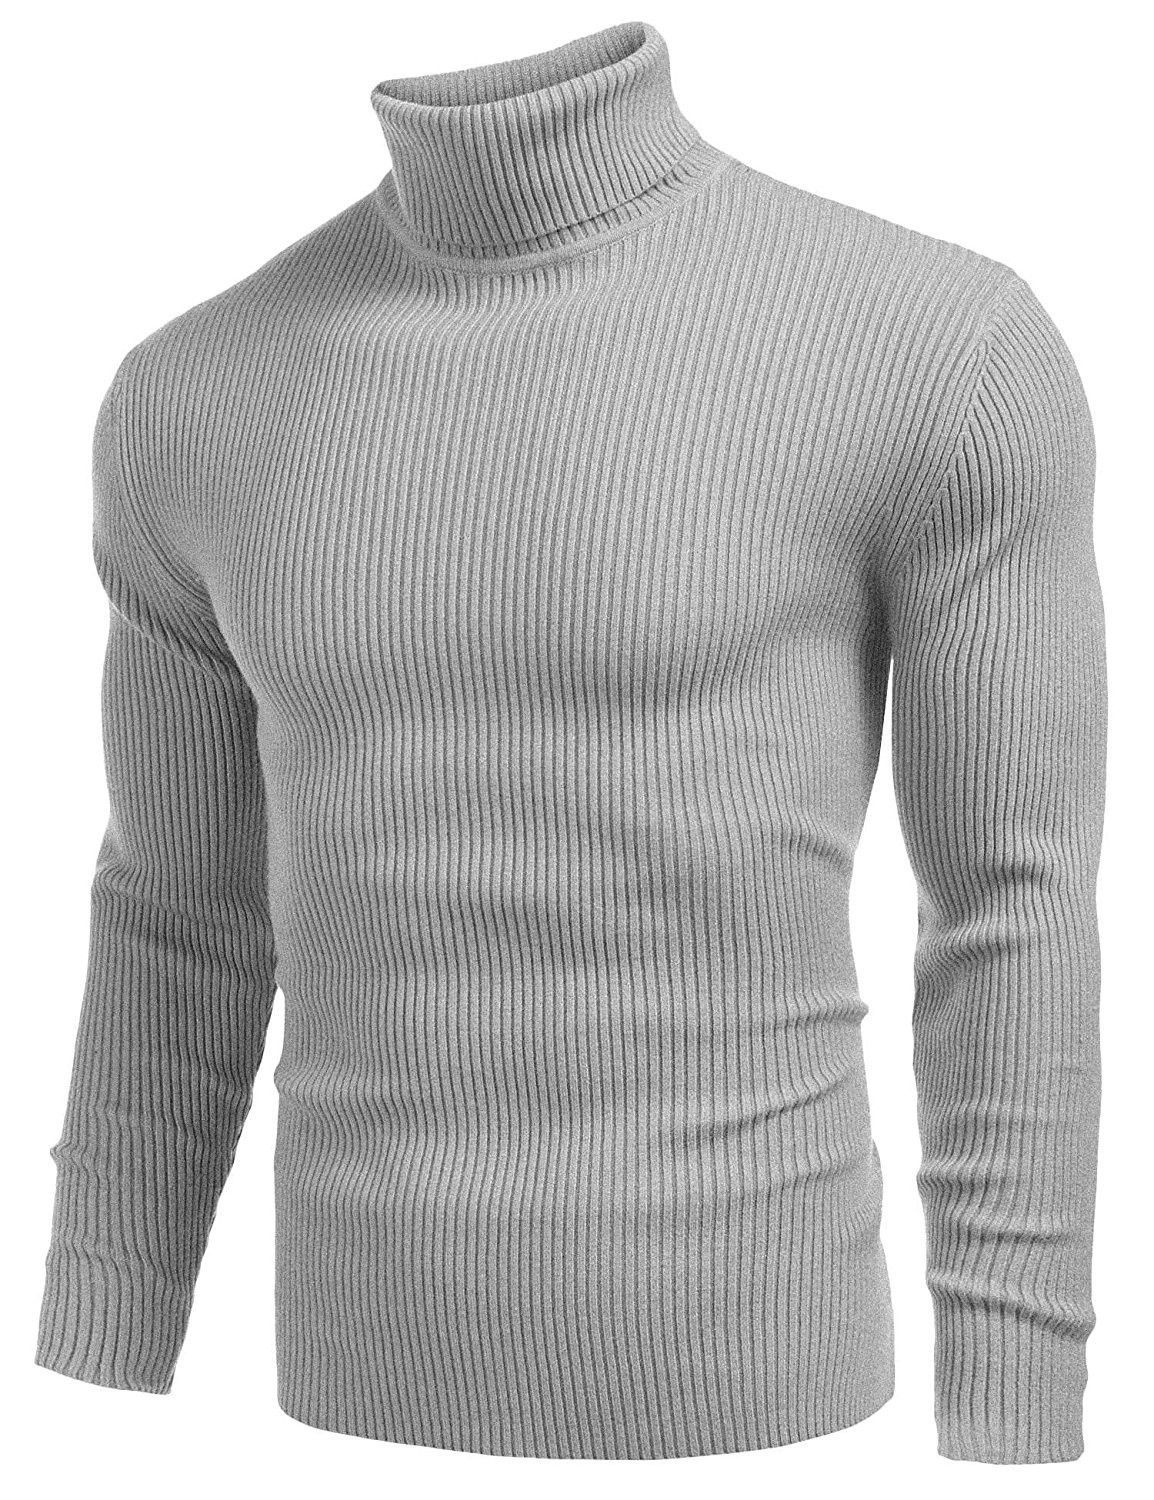 FRPE Men Pullover Long Sleeve Knit Turtleneck Warm Solid Sweater